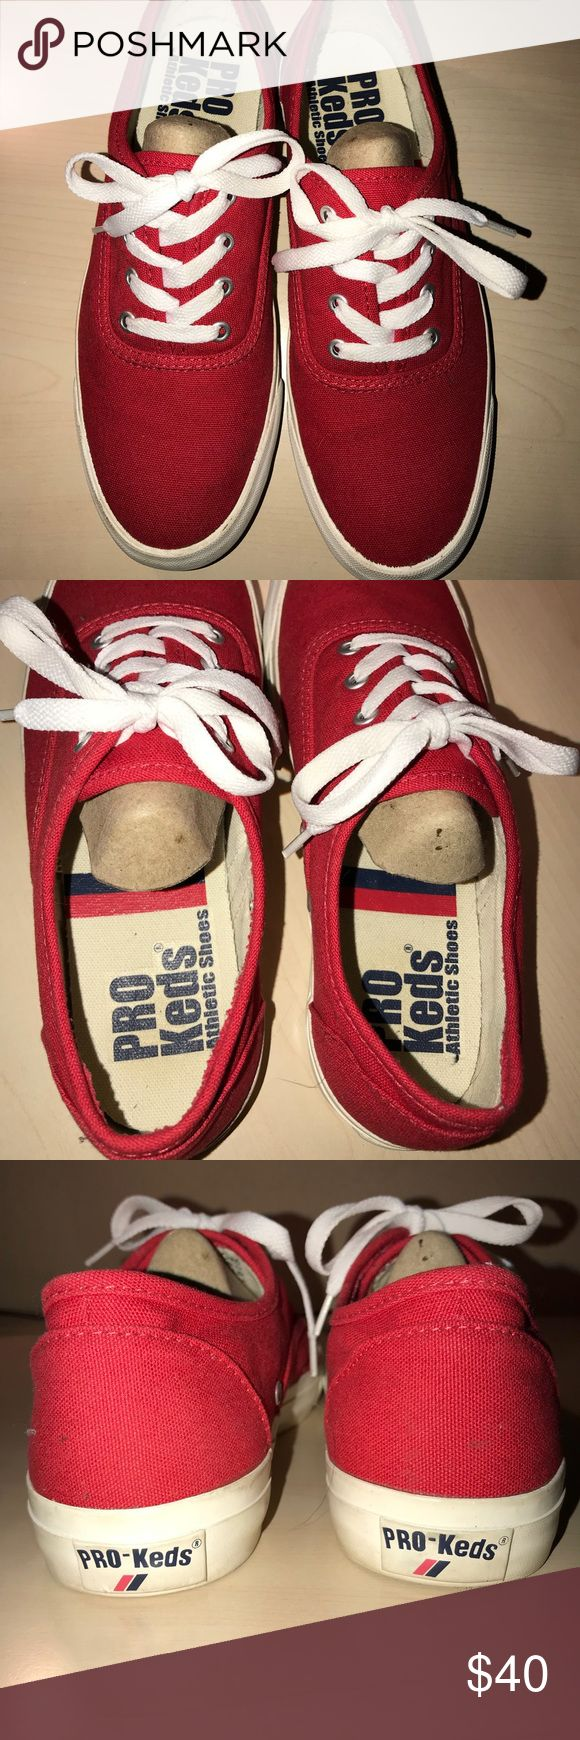 Pro Keds Athletic shoes In perfect condition, basically brand new Keds Red Athletic shoe. Worn once Keds Shoes Athletic Shoes